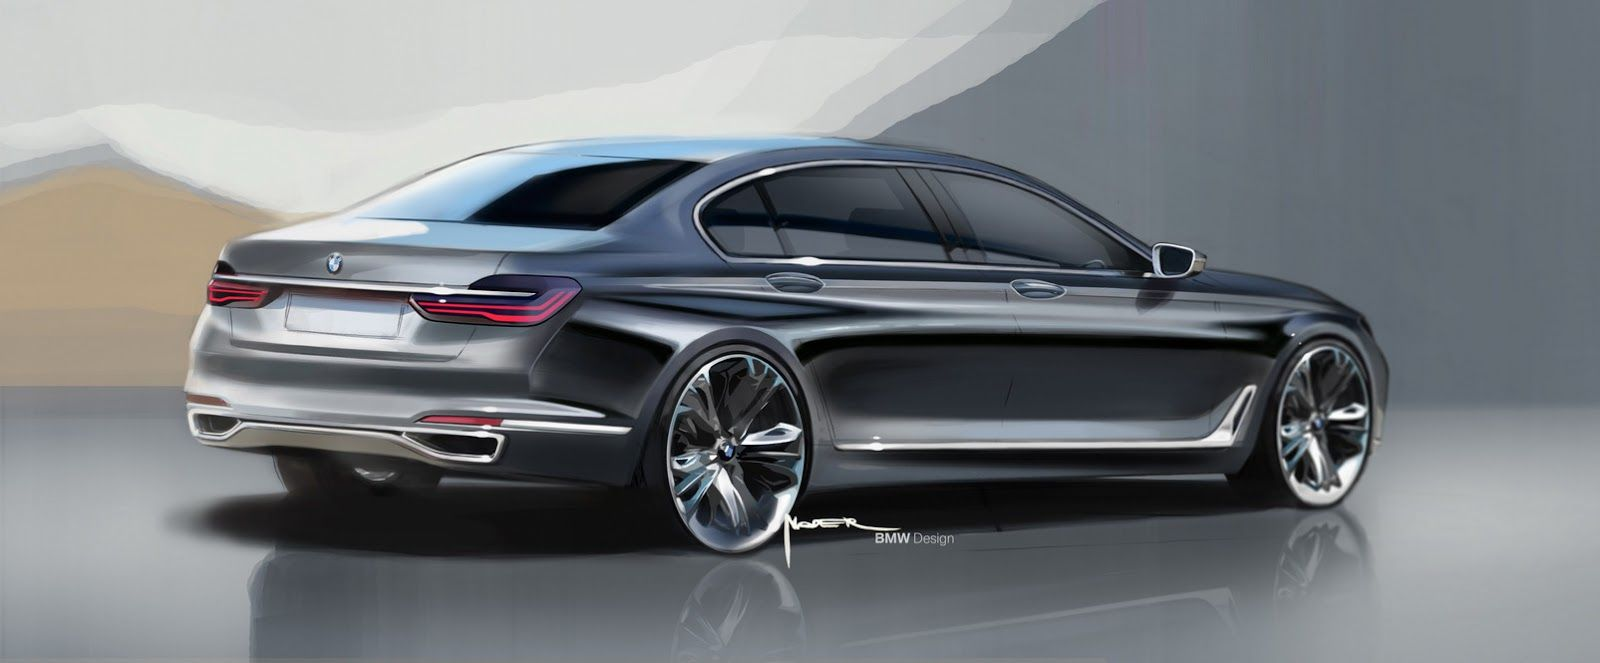 The All New 2016 BMW 7 Series In 169 Photos And Full Details